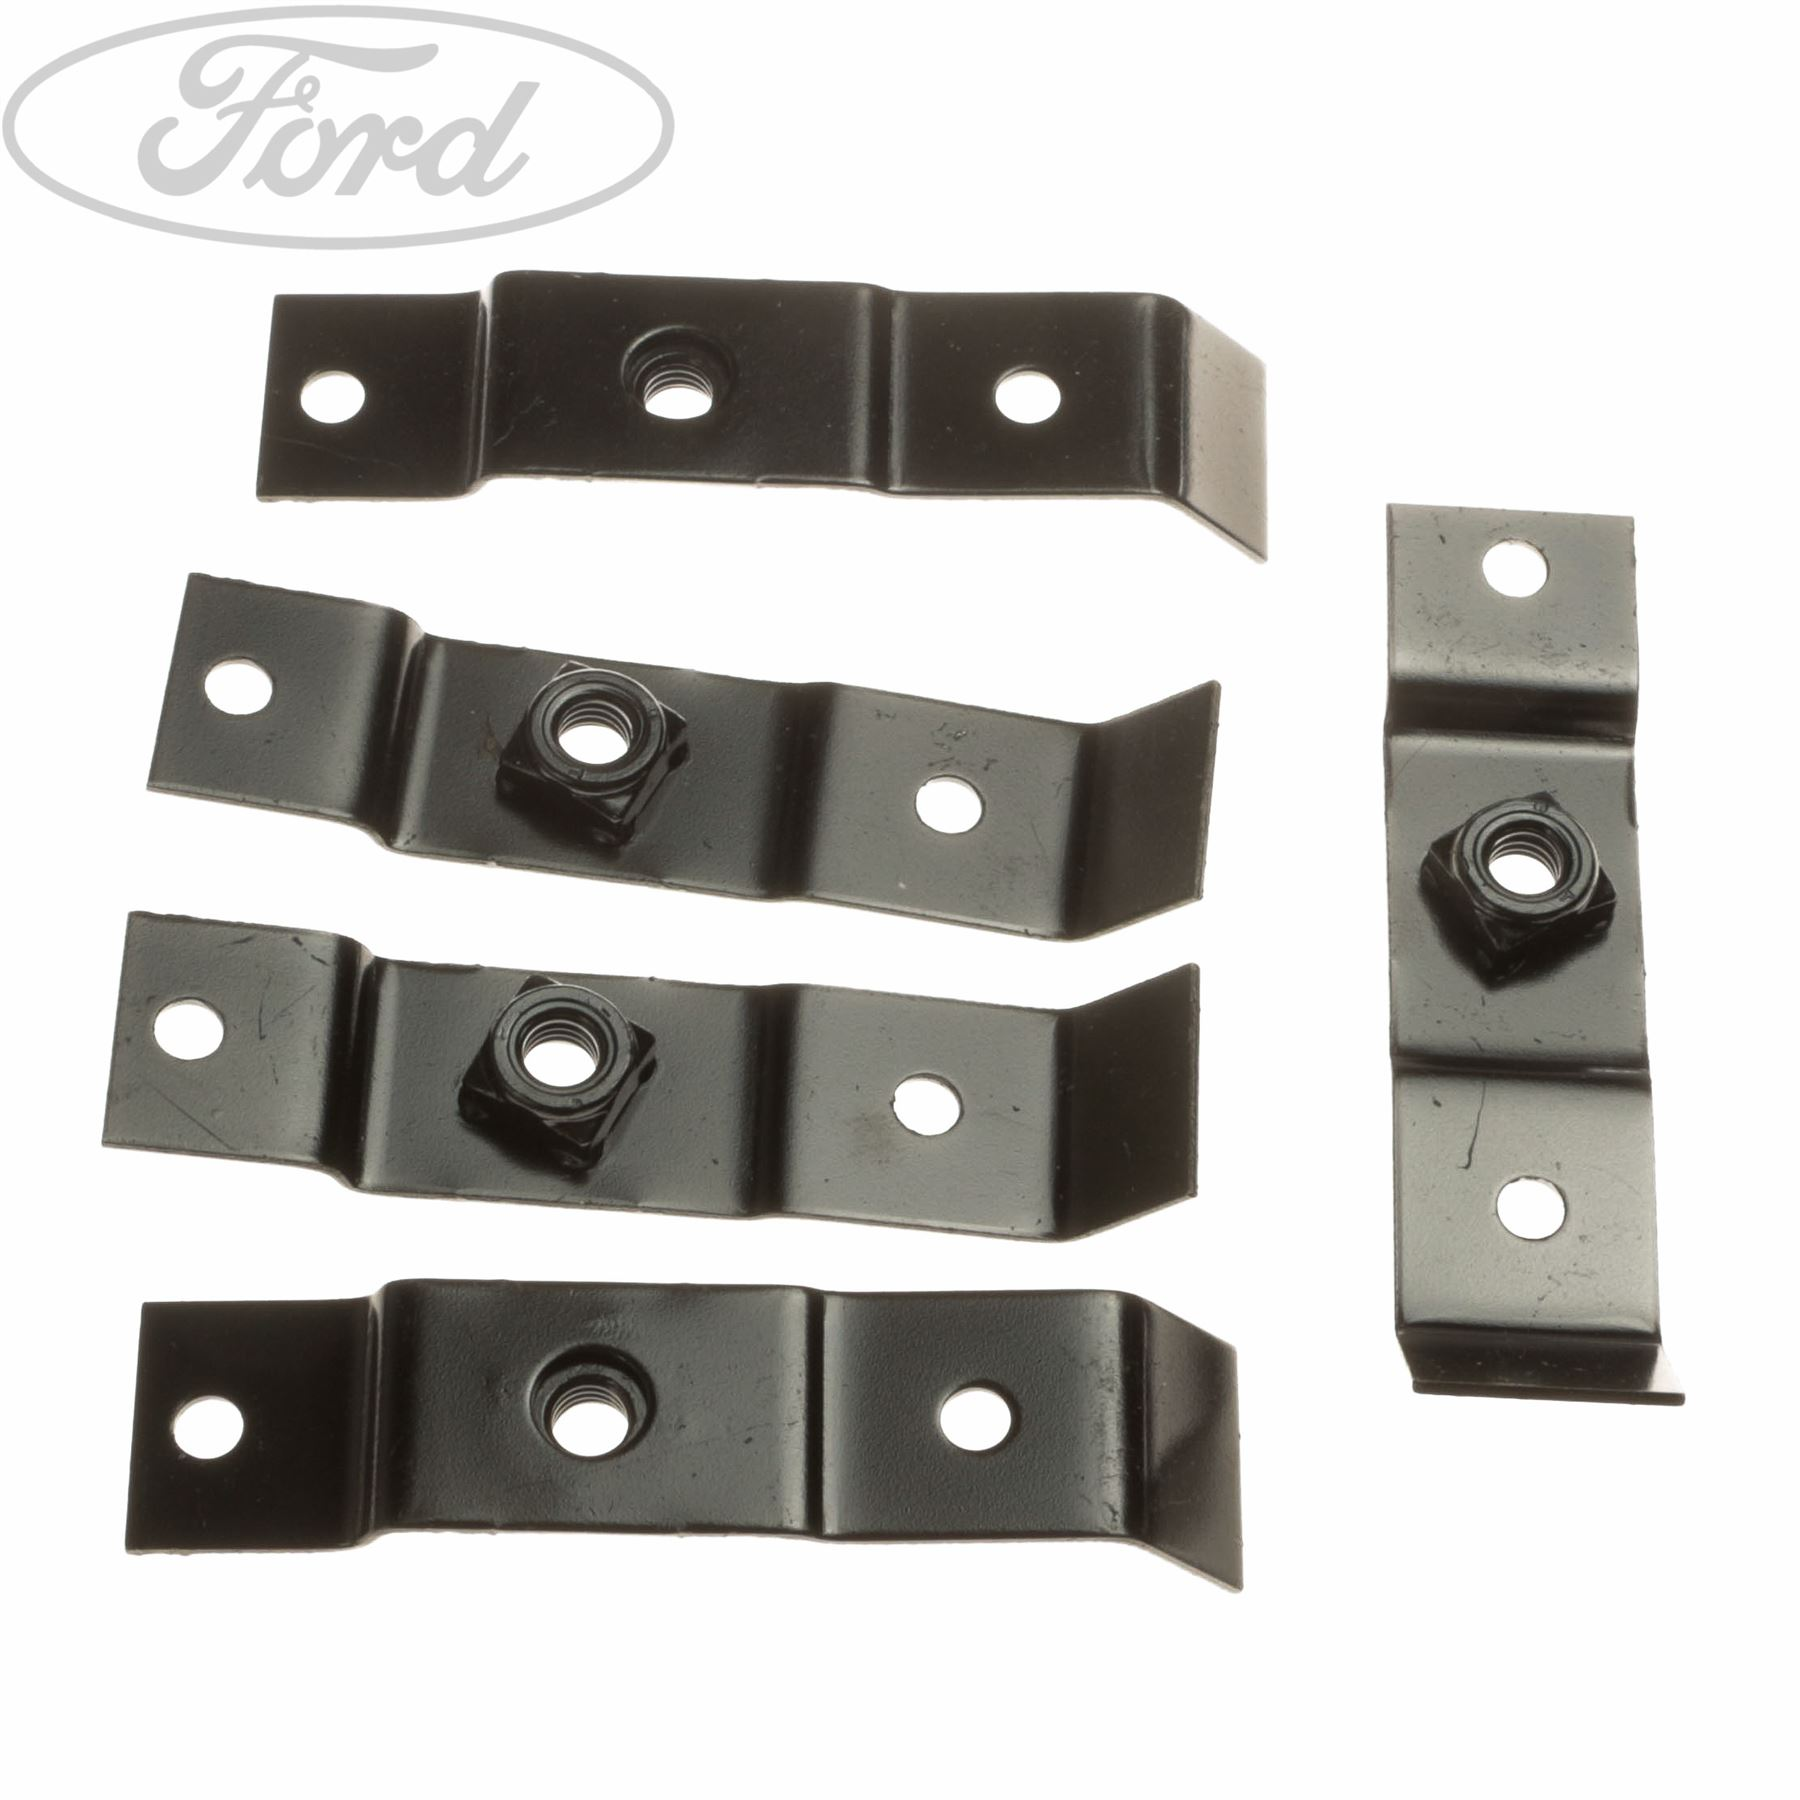 10 x YOU.S Genuine Bumper Mounting Clips for Ford Transit